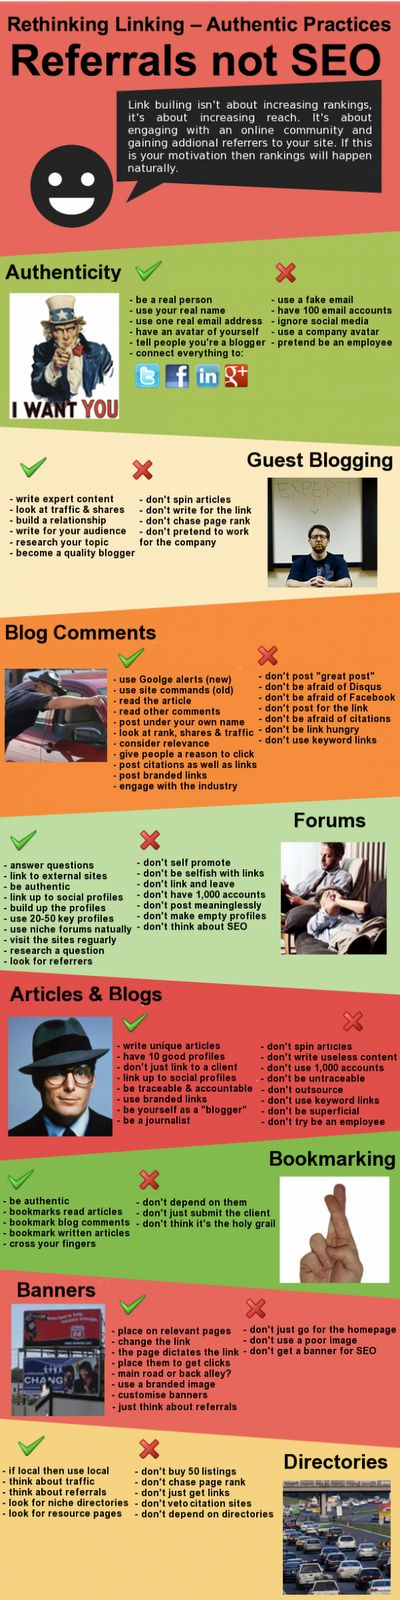 How To Build Backlinks (2012) by SEM and SEO News. A lazy attempt at an infographic by putting a lot of words and some stock photos. The words are relevant, so I am including it.